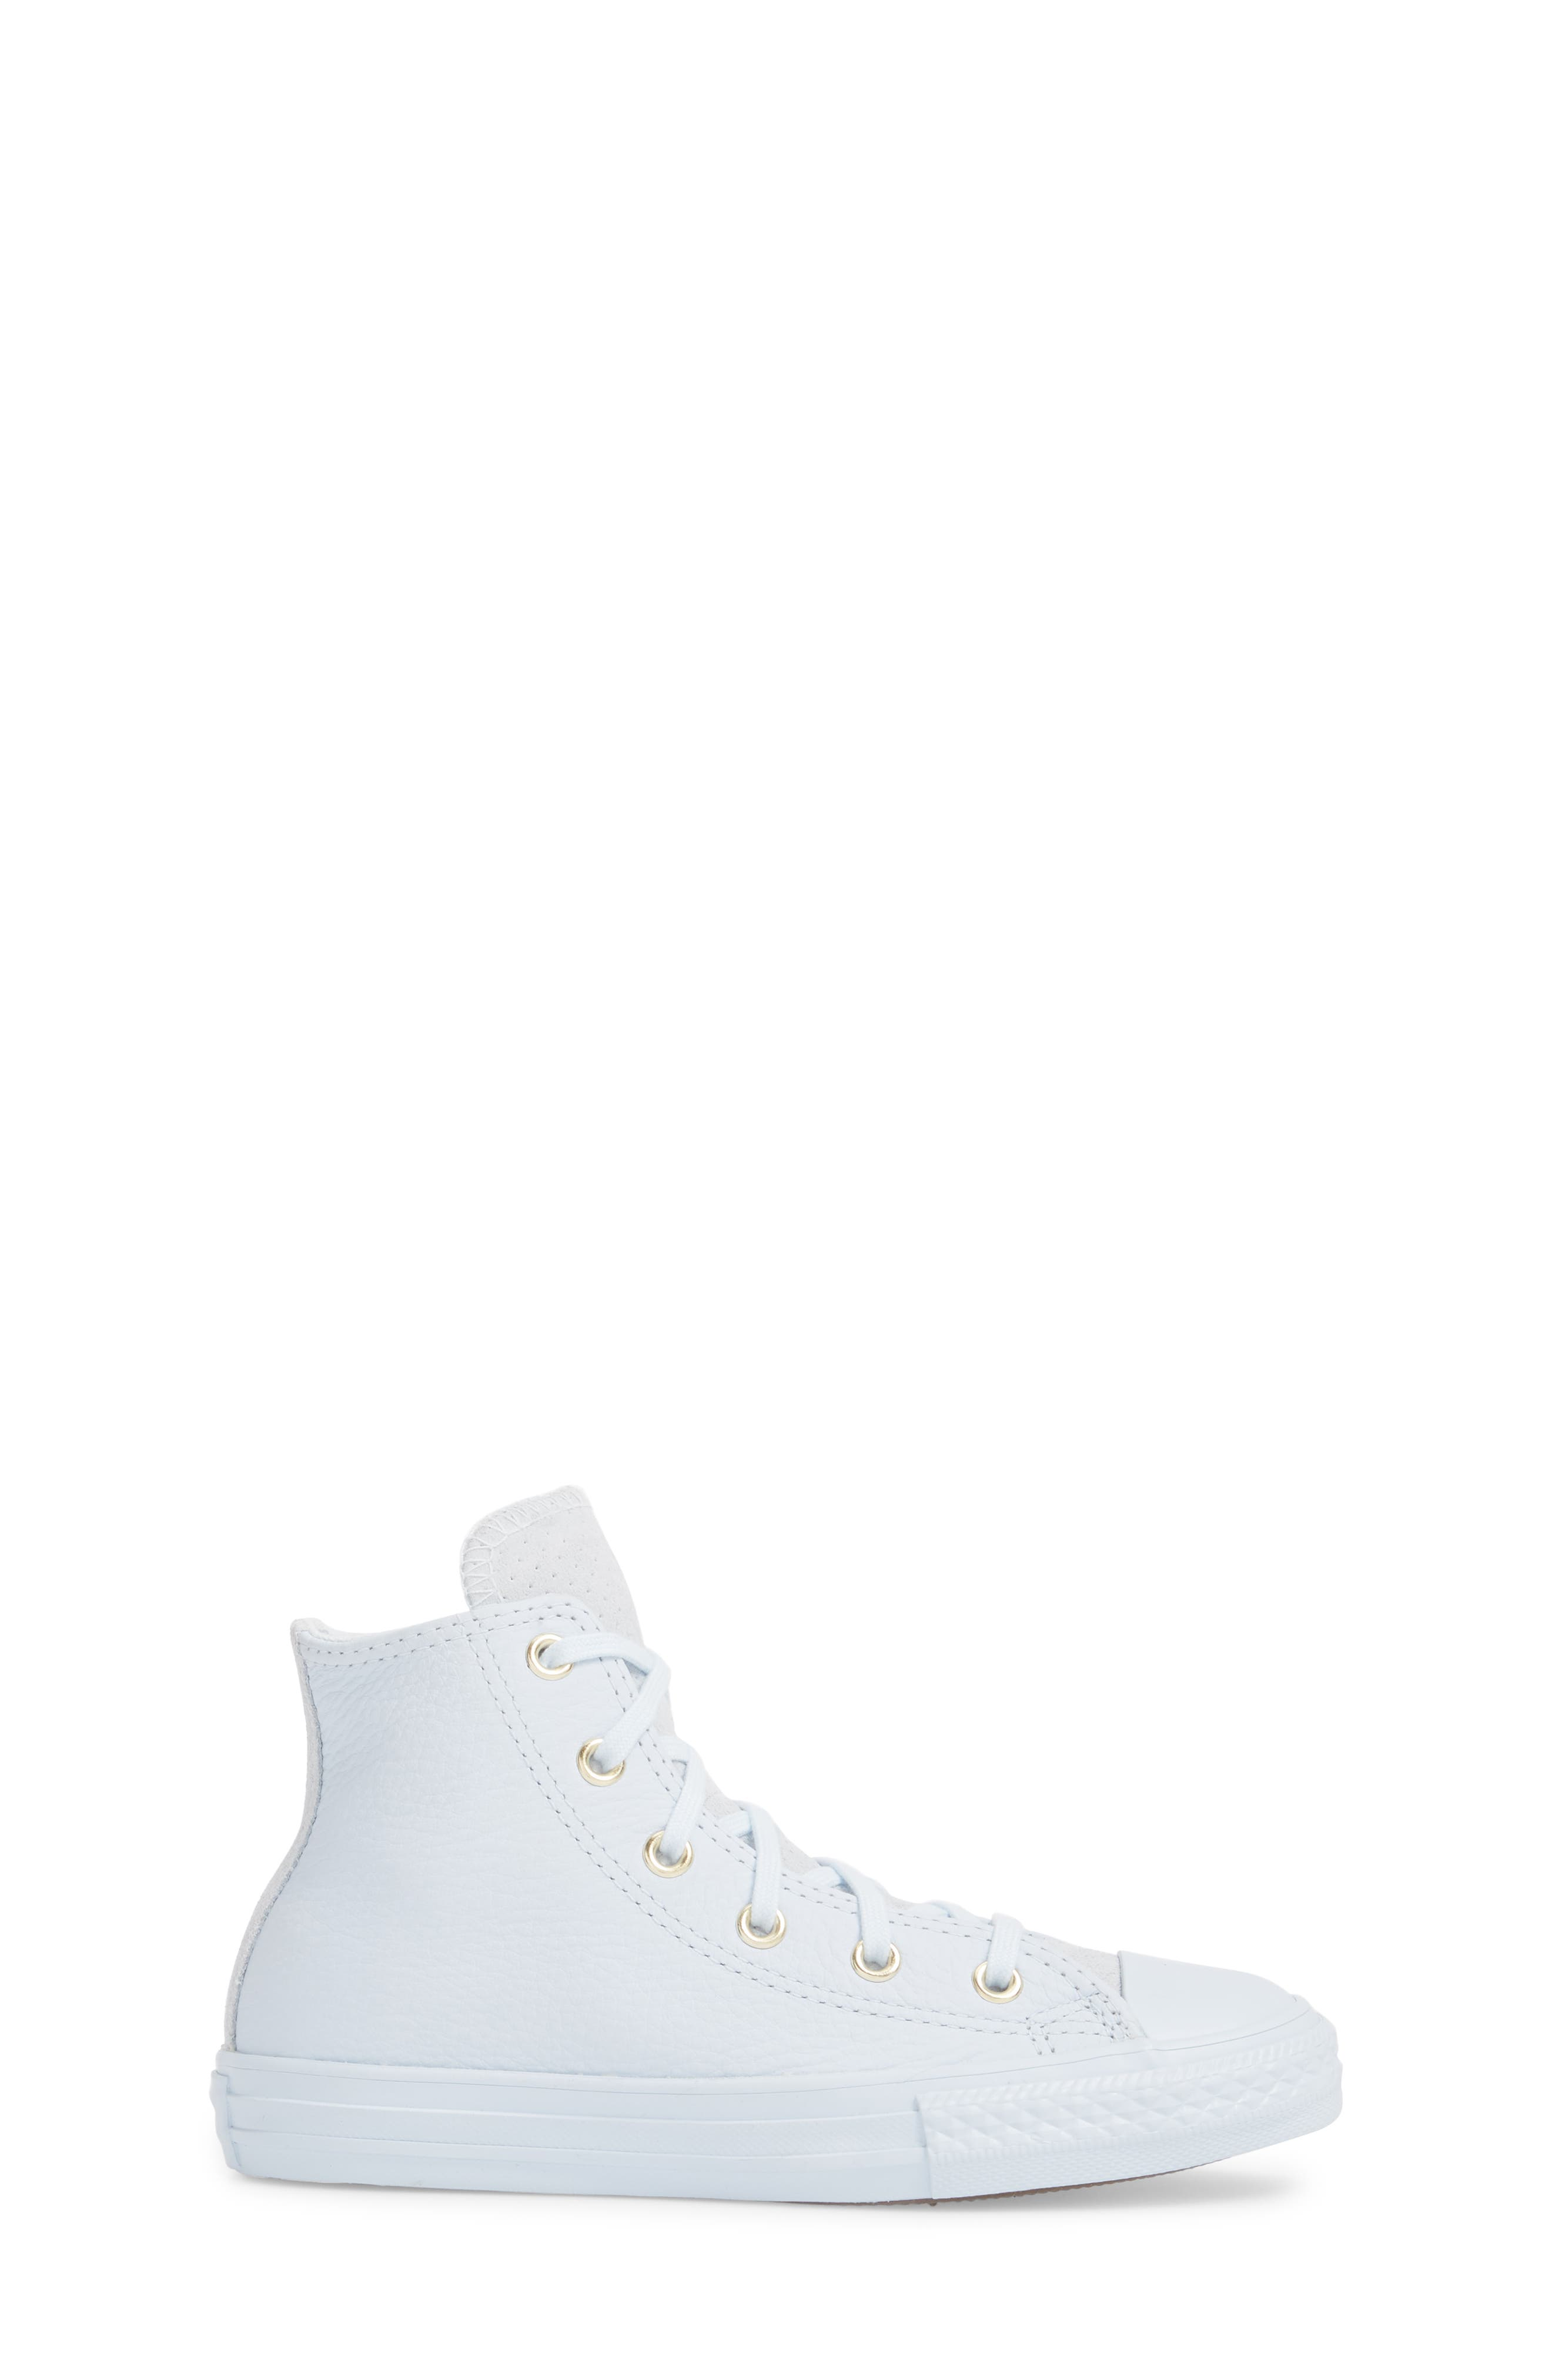 Chuck Taylor<sup>®</sup> All Star<sup>®</sup> Mono High Top Sneaker,                             Alternate thumbnail 3, color,                             454